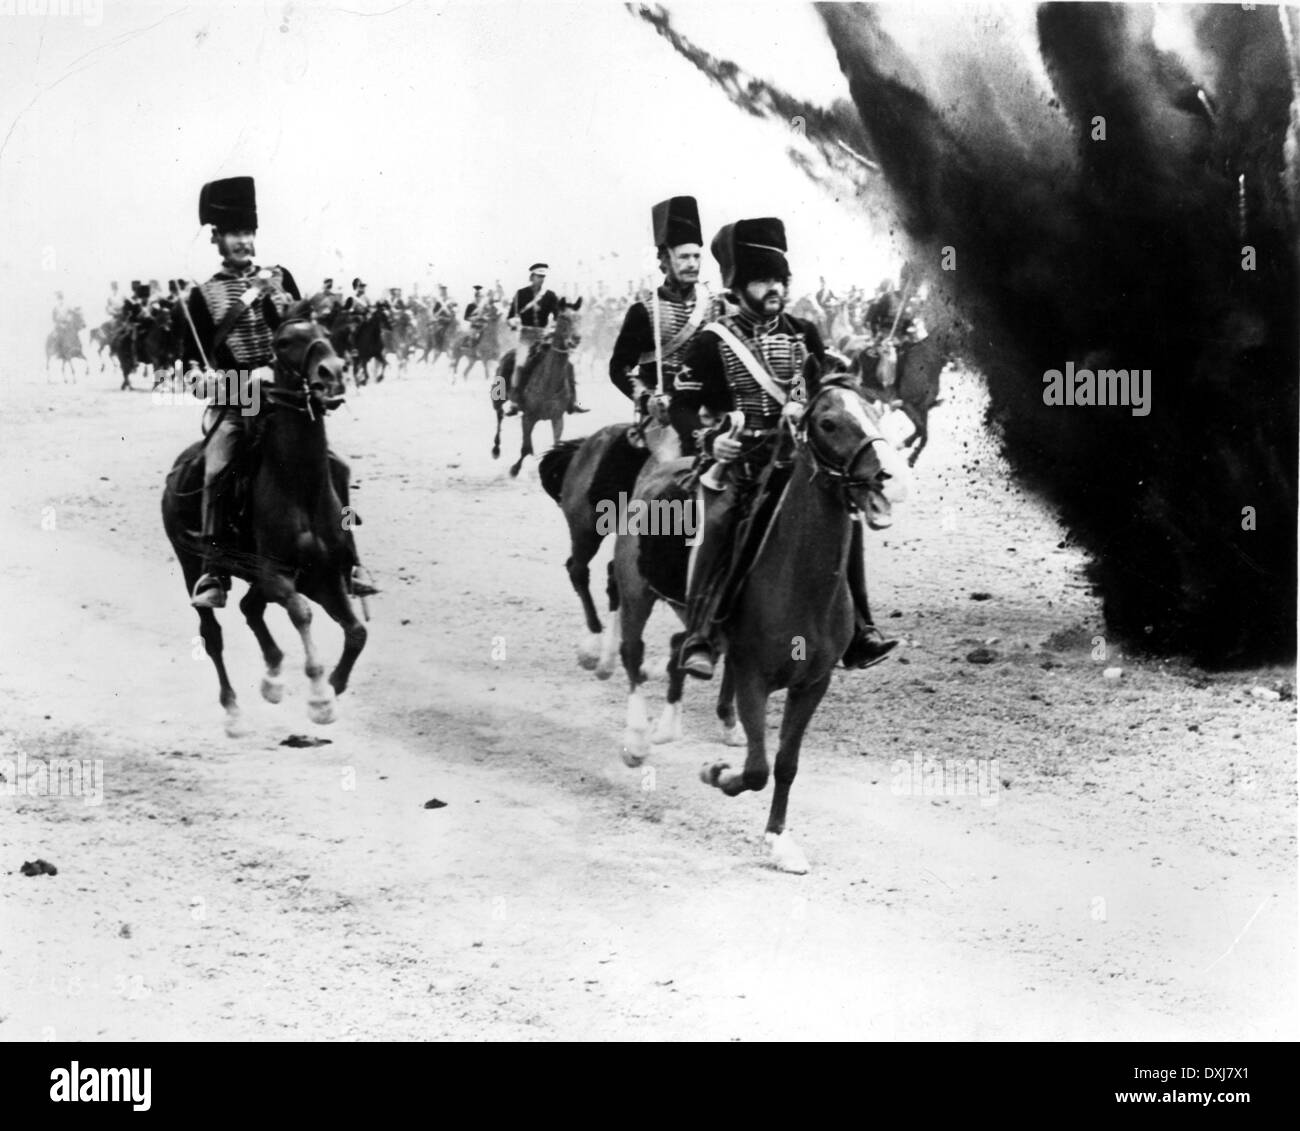 THE CHARGE OF THE LIGHT BRIGADE - Stock Image